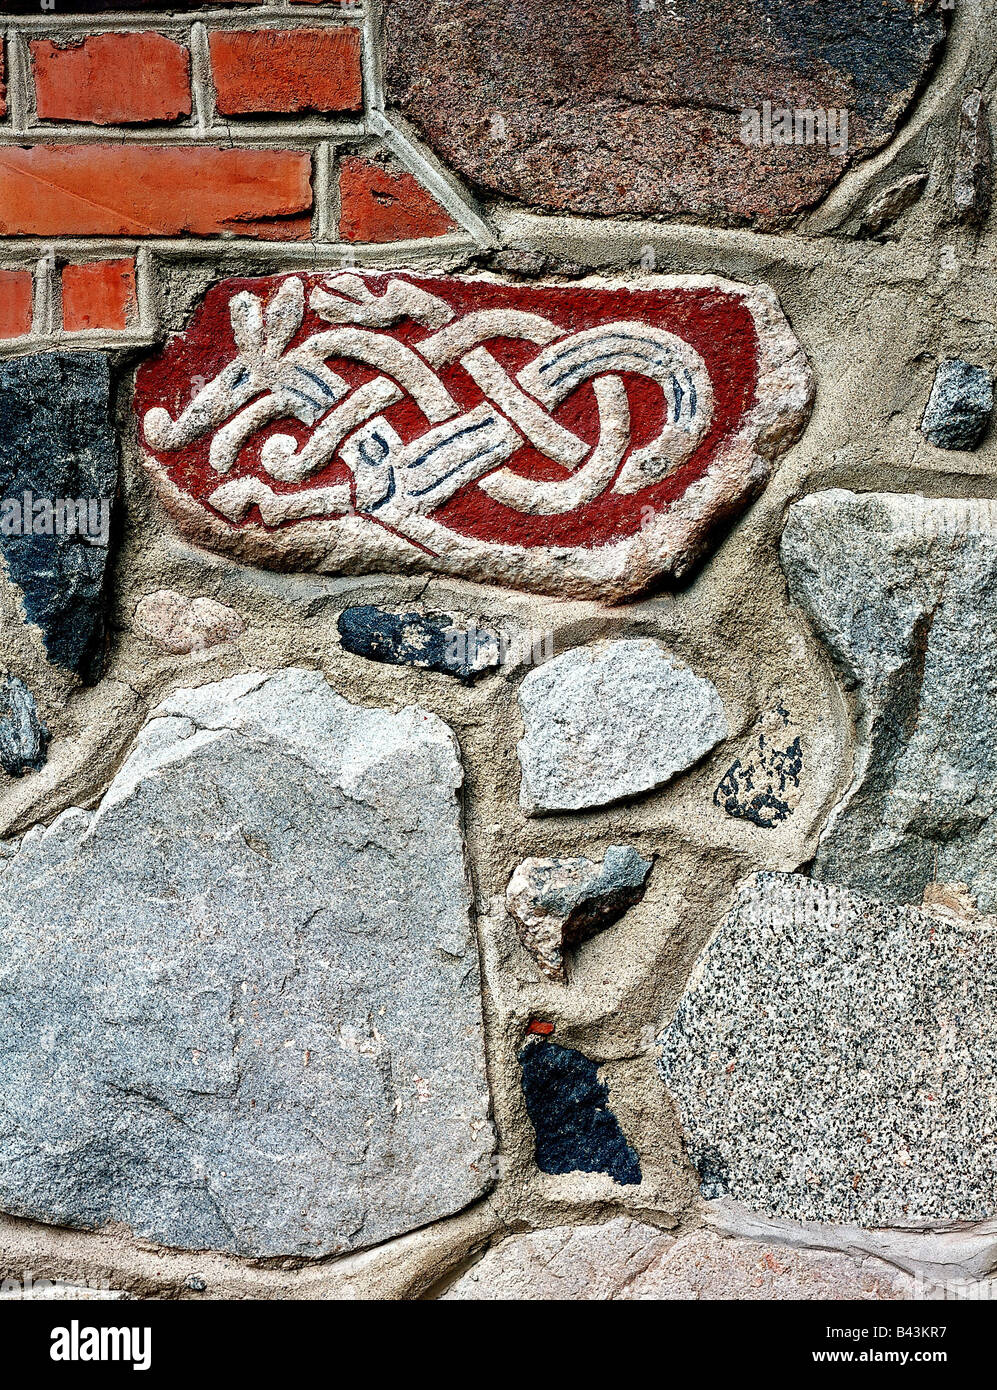 middle ages, Vikings, writing, runes, rune depicting the head of a dragon, fragment, rune stone, 8th / 9th century - Stock Image